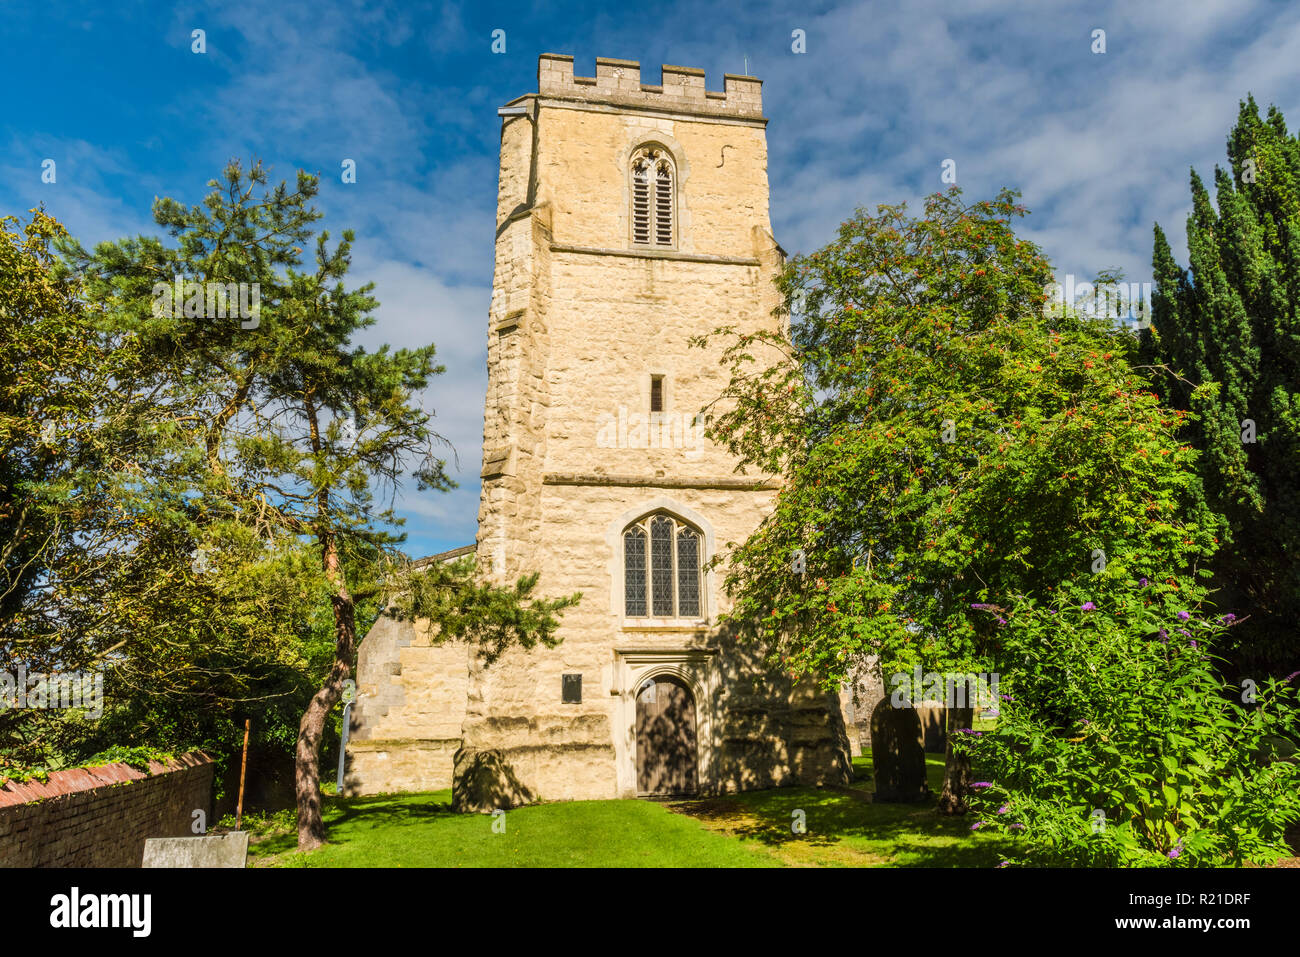 Sunlight on the west tower of medieval St Mary's Church in the Buckinghamshire village of Pitstone, England - Stock Image